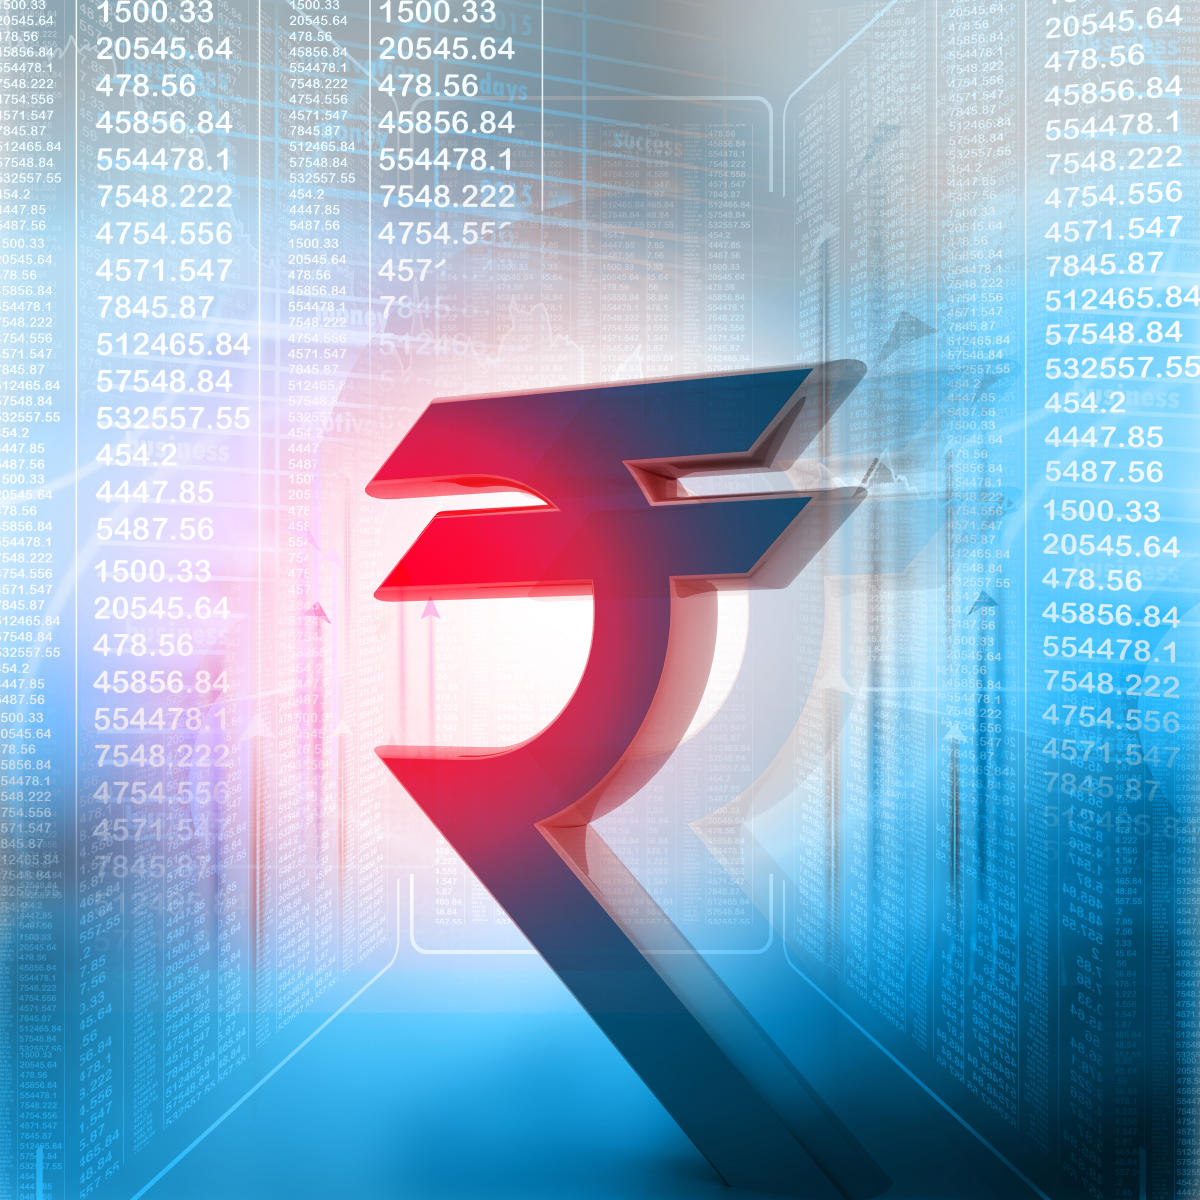 Besides, the dollar's weakness against some currencies overseas also supported the rupee.